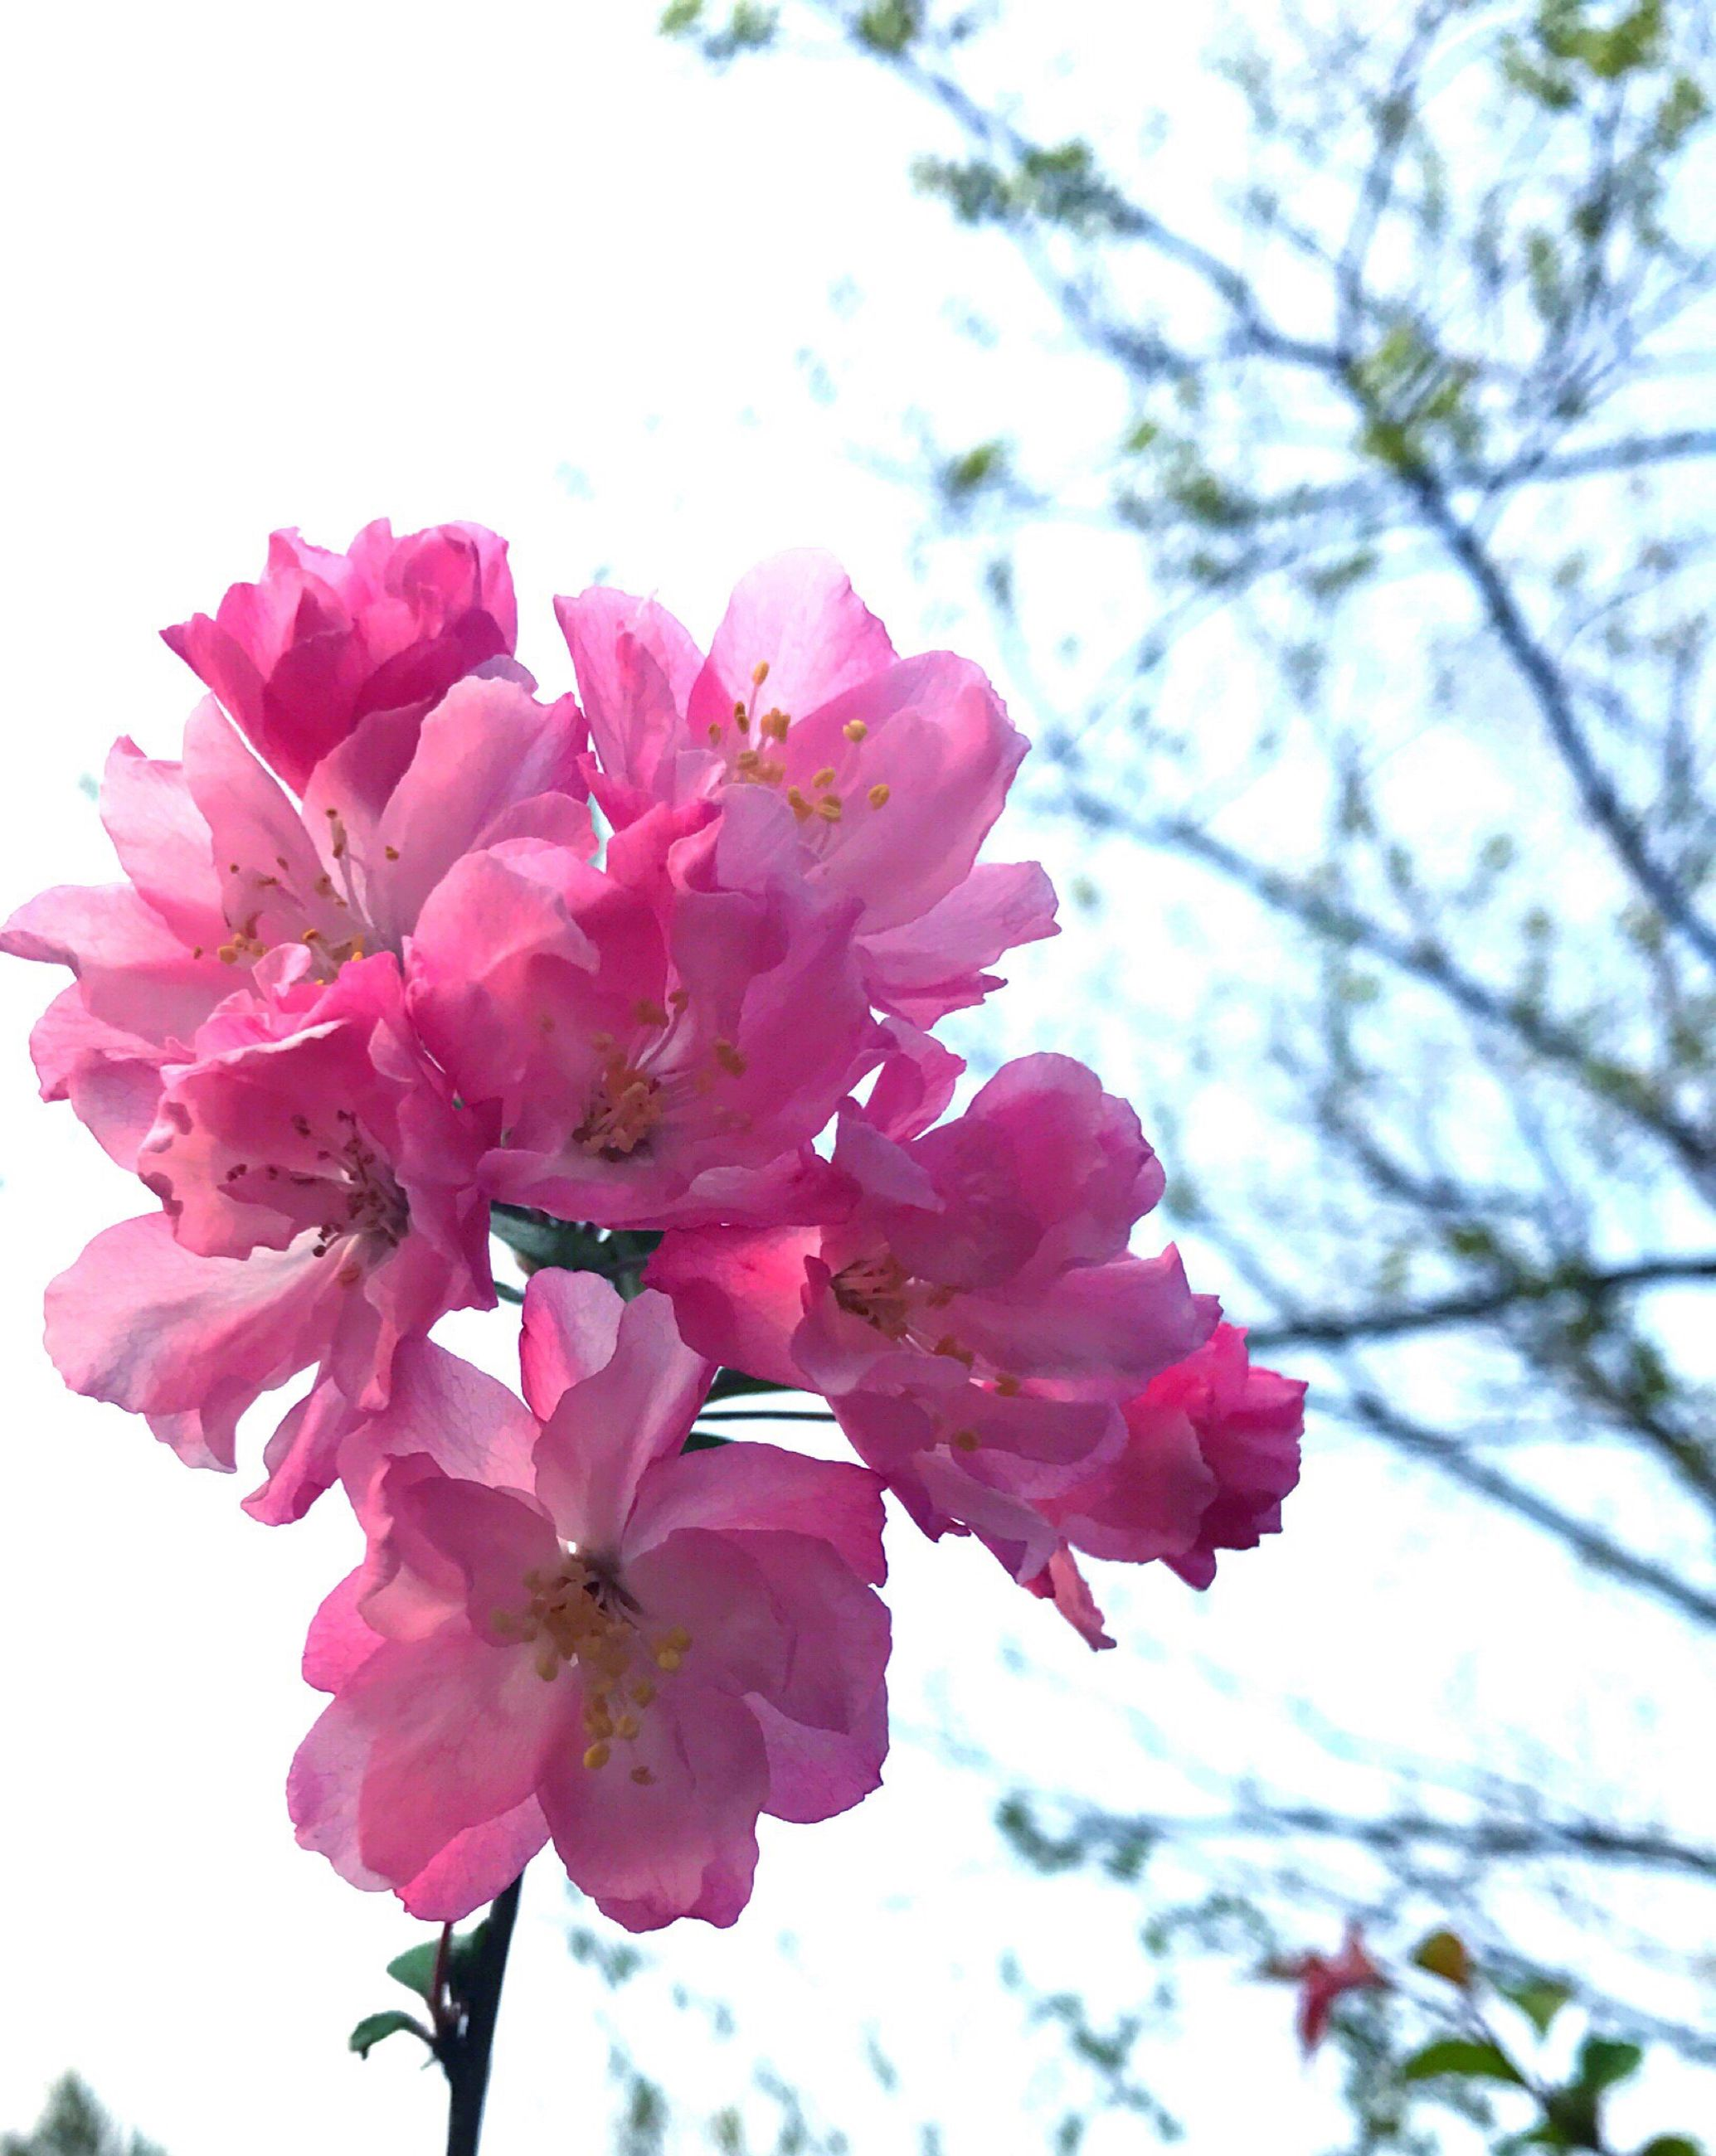 flower, nature, freshness, growth, fragility, beauty in nature, pink color, petal, close-up, flower head, springtime, sky, blossom, outdoors, no people, tree, day, rhododendron, pistil